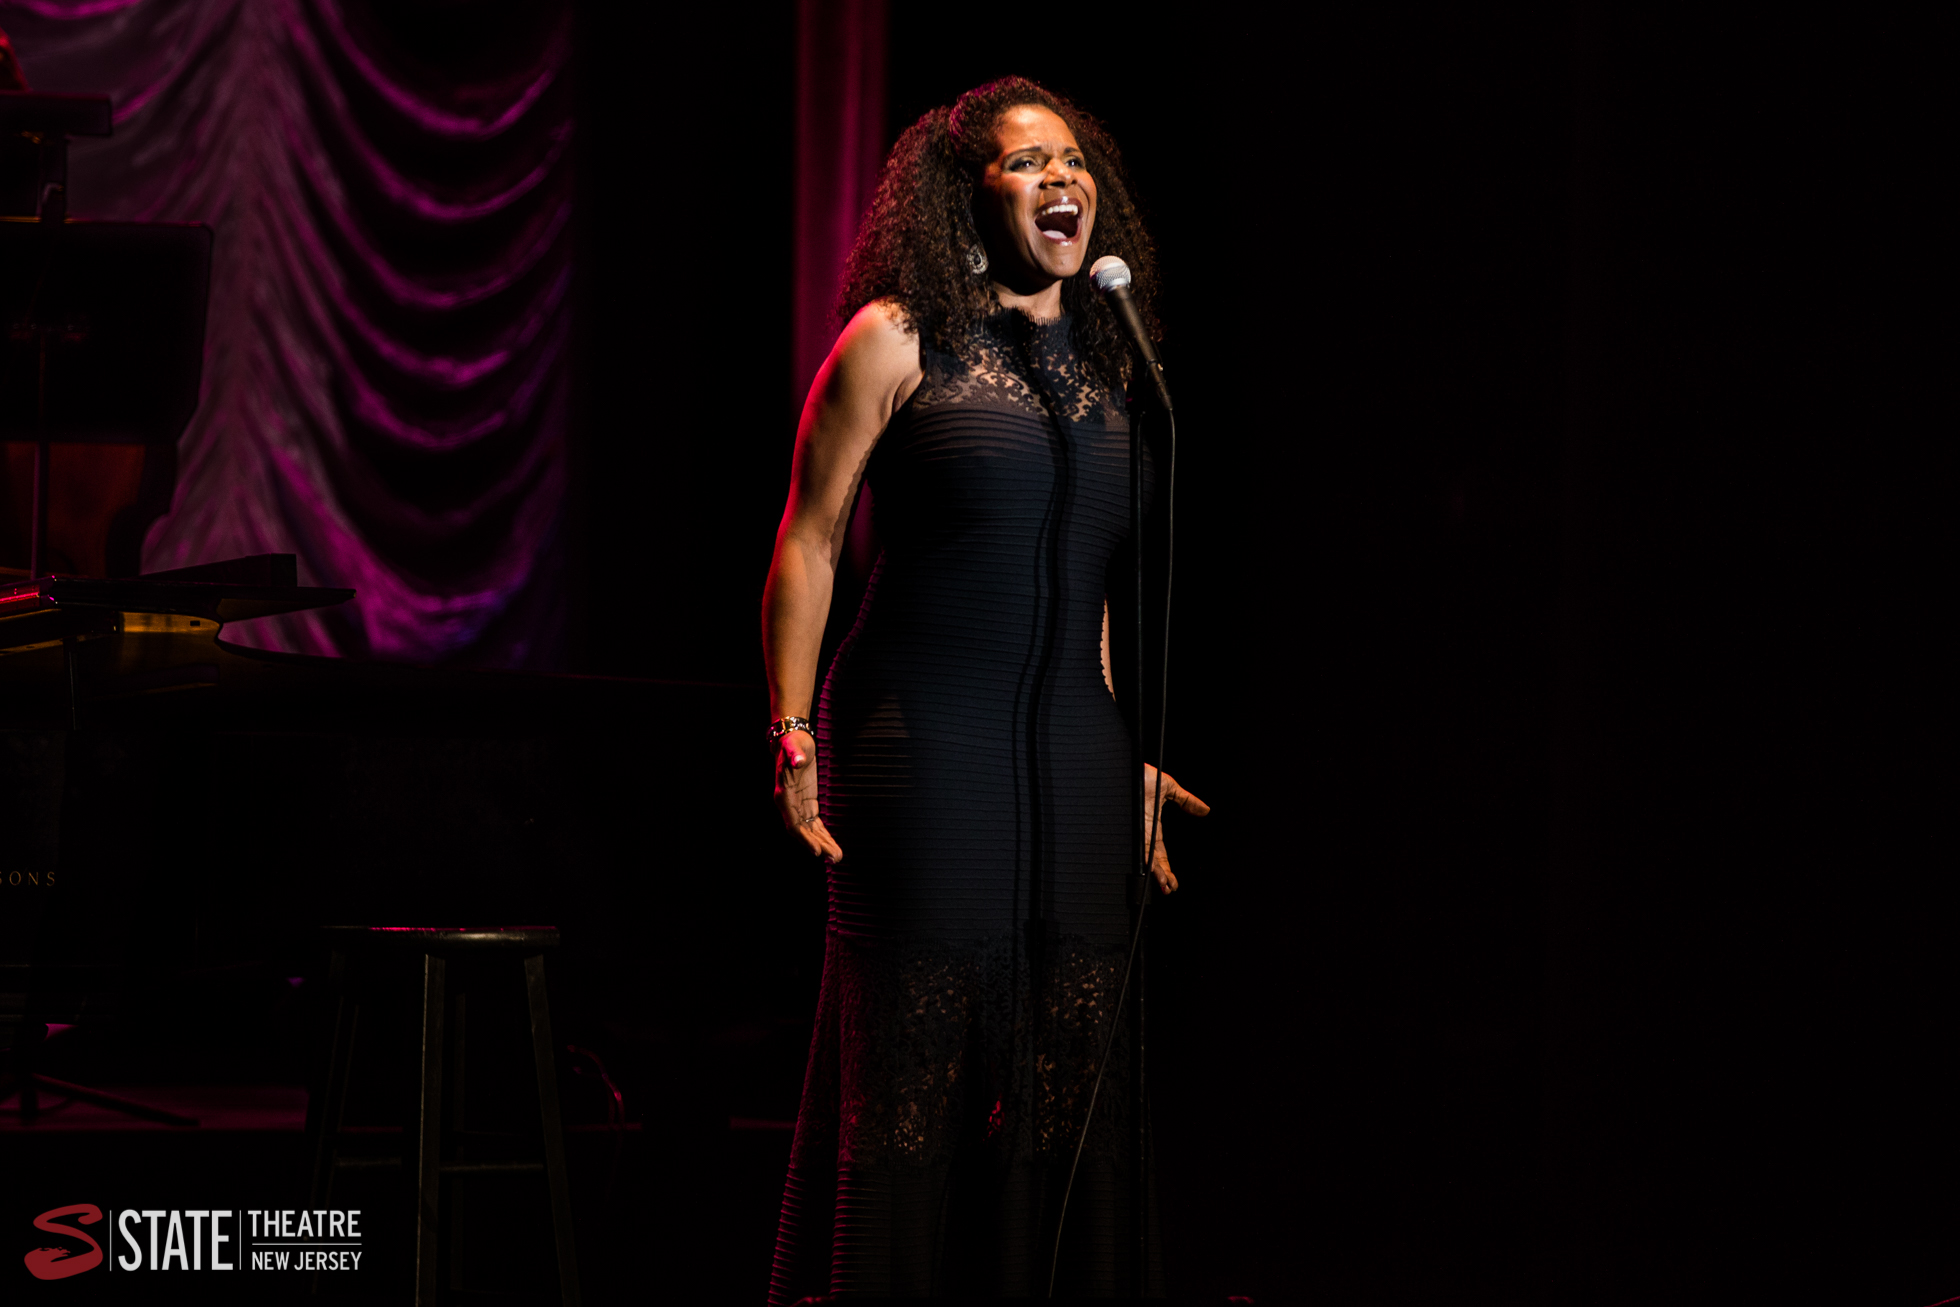 State Theatre Gala featuring Audra McDonald